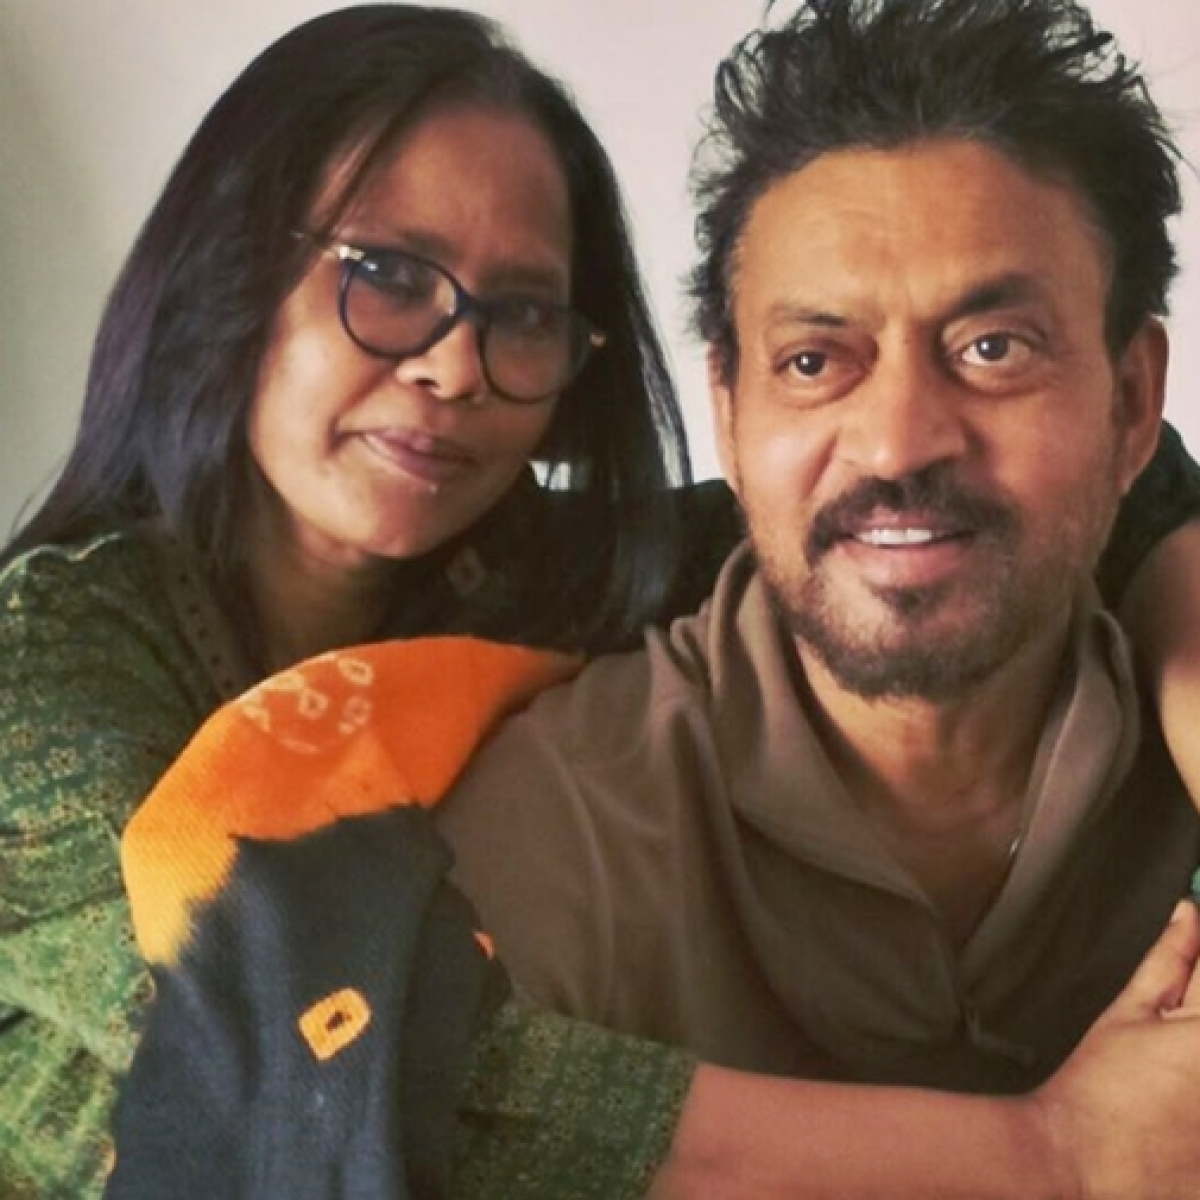 'Life is not cinema, there are no retakes': Irrfan Khan's family issues statement post actor's death